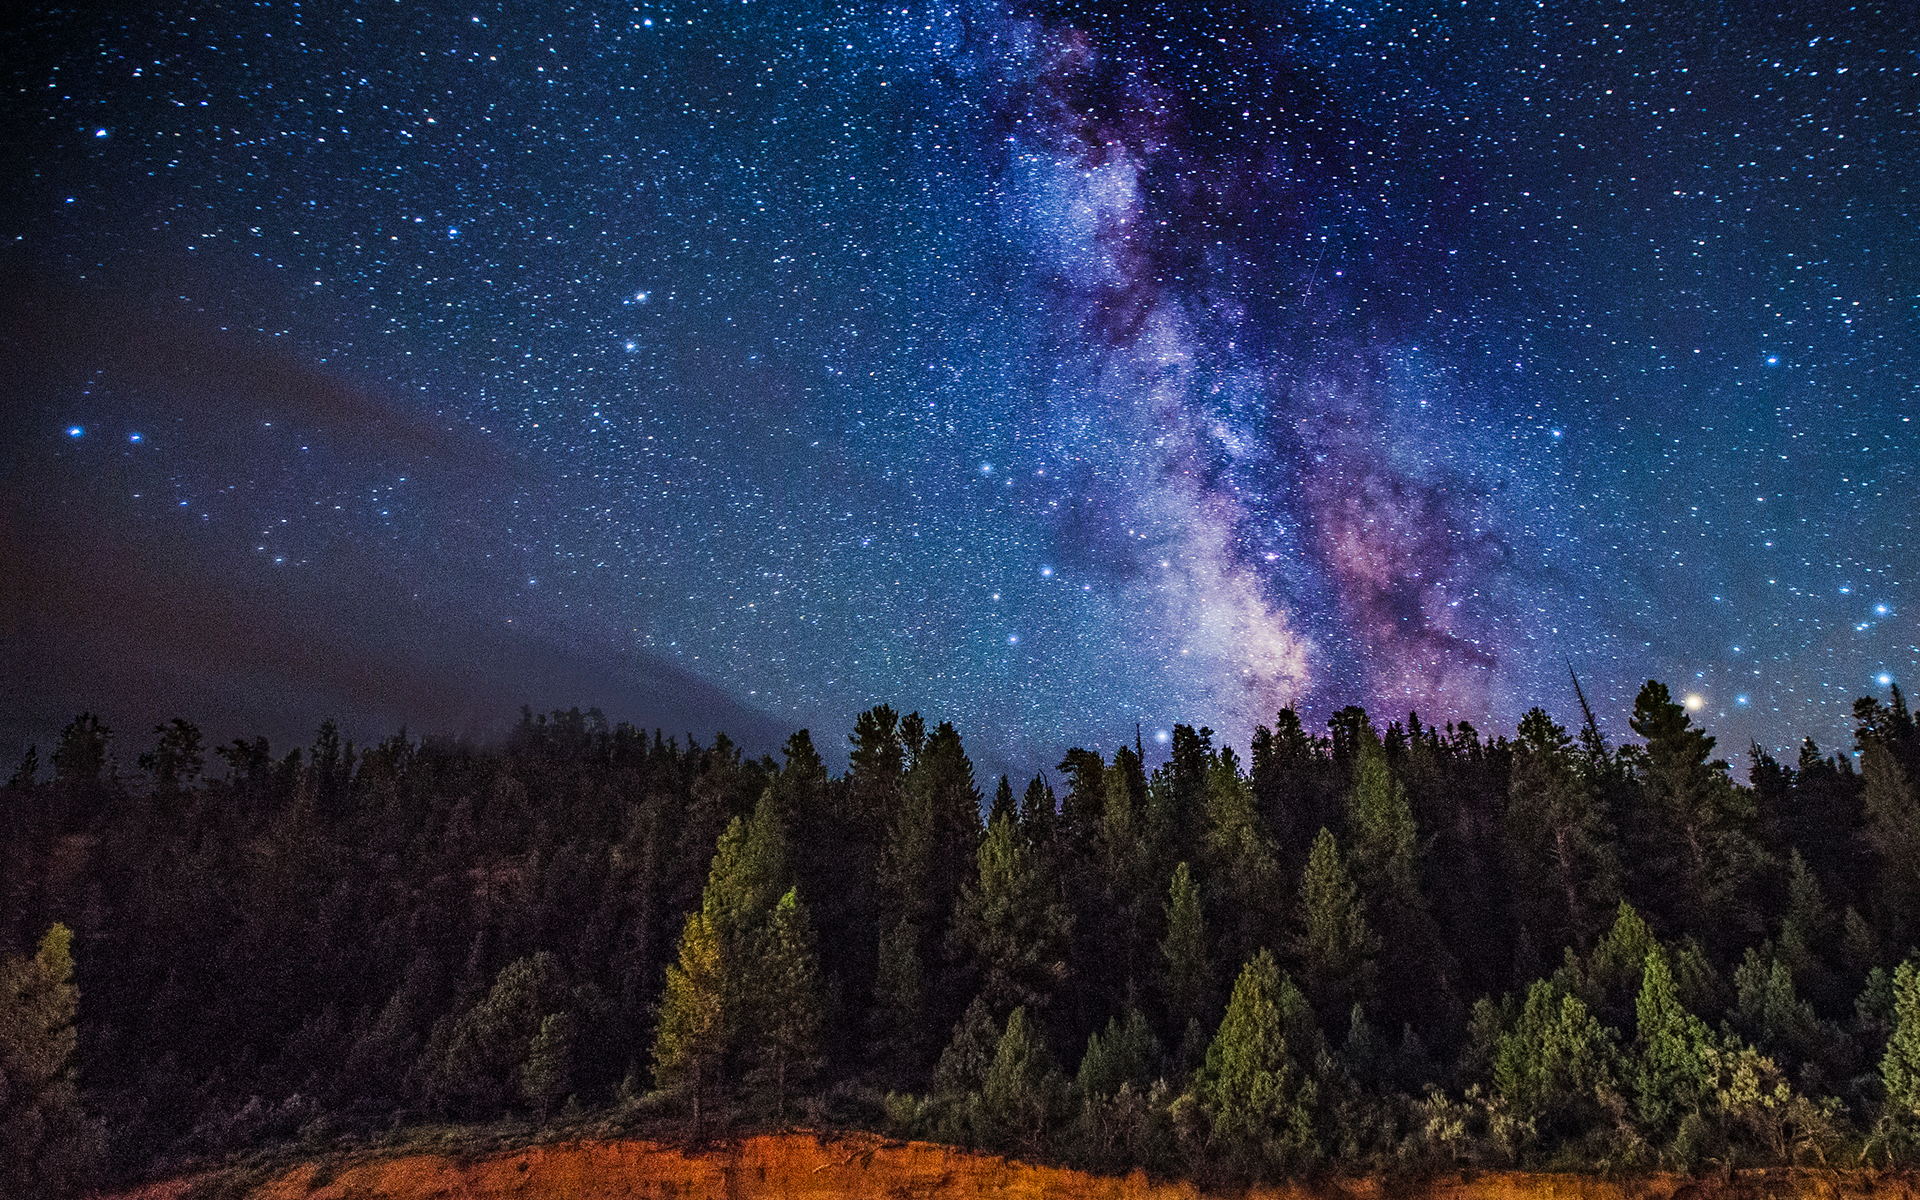 10 mesmerizing hd images of the milky way hd wallpapers for Full wall wallpaper